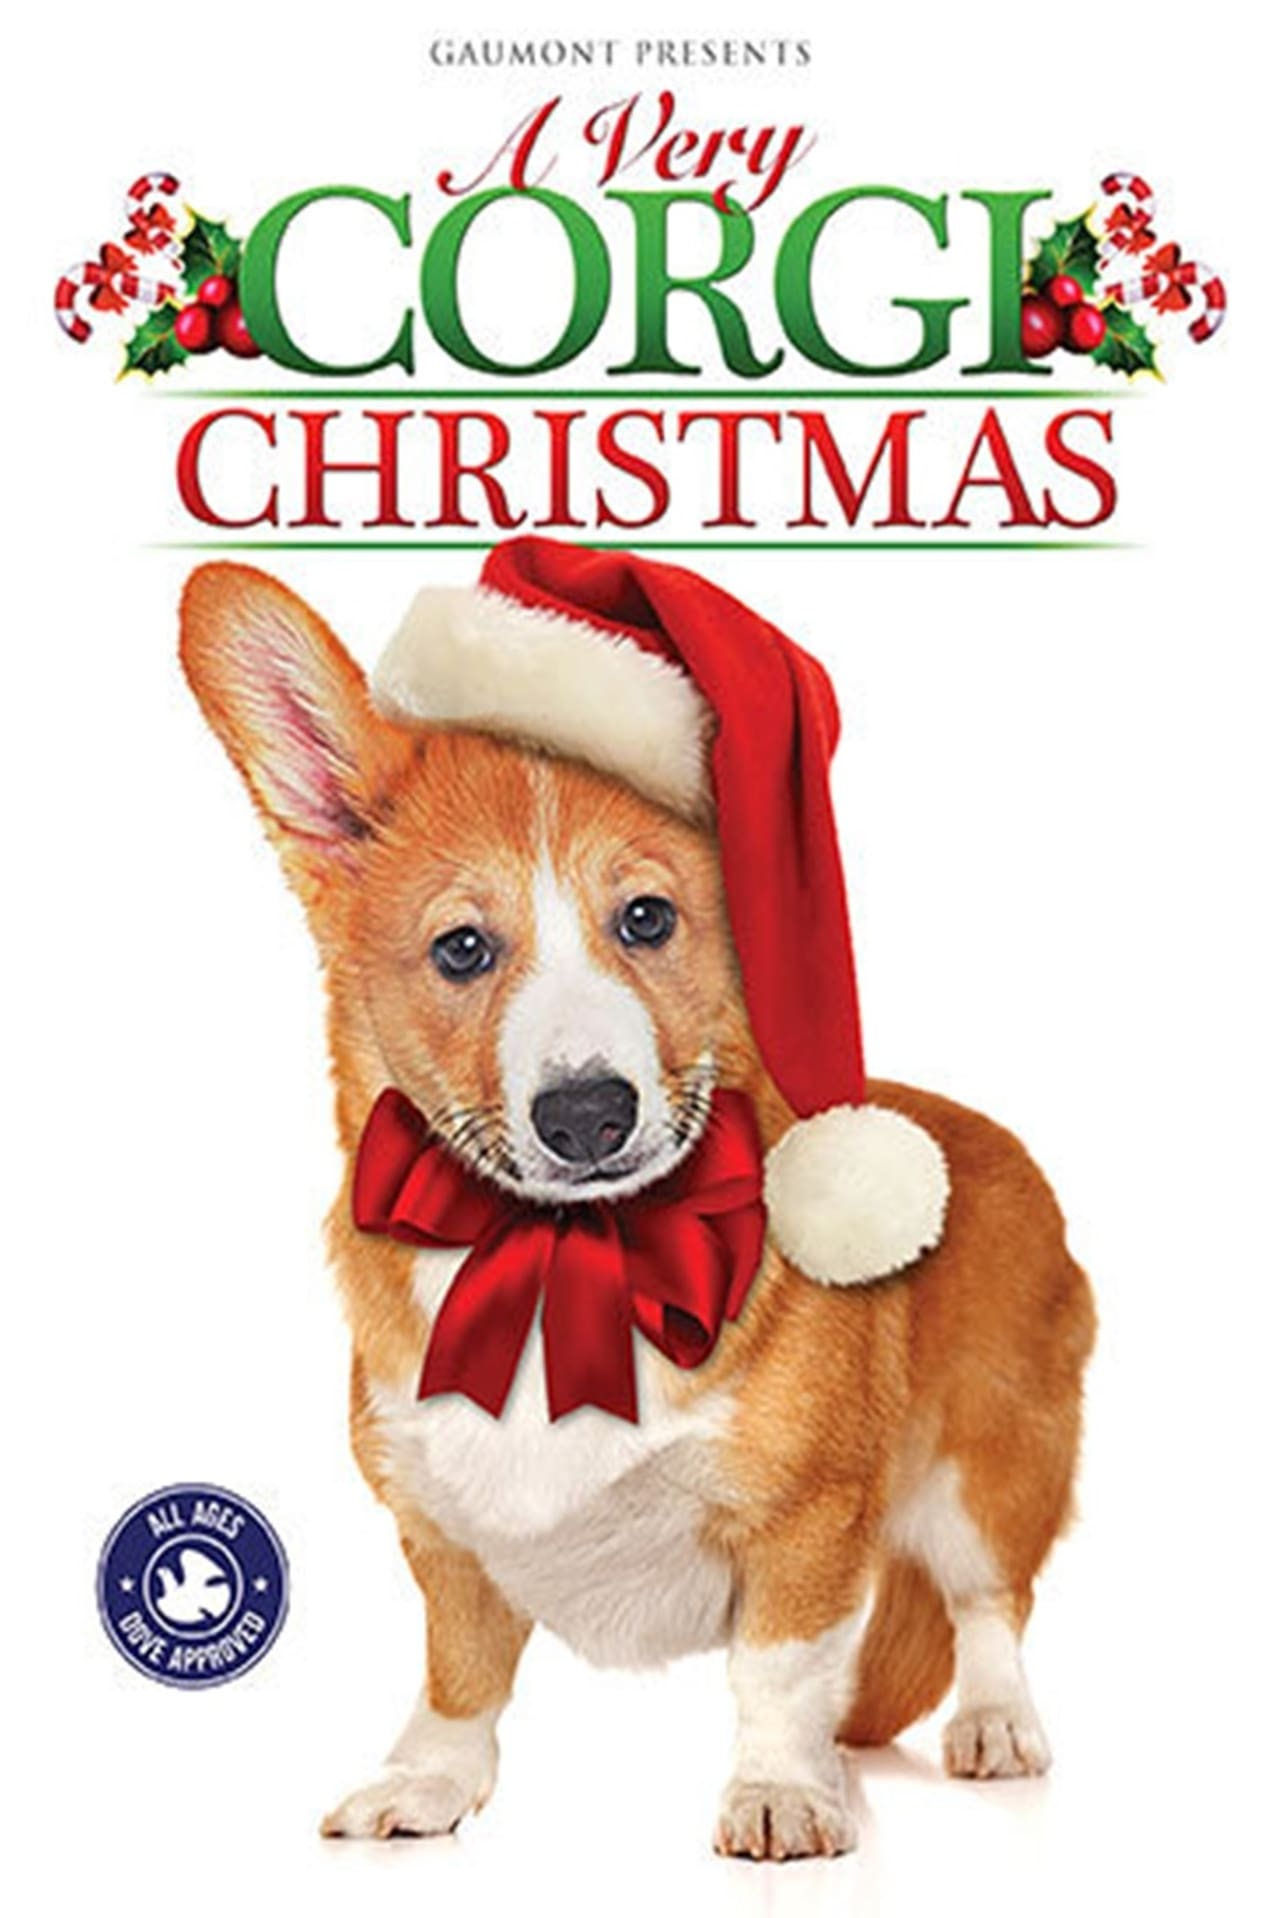 A Very Corgi Christmas Free movie online at 123movies